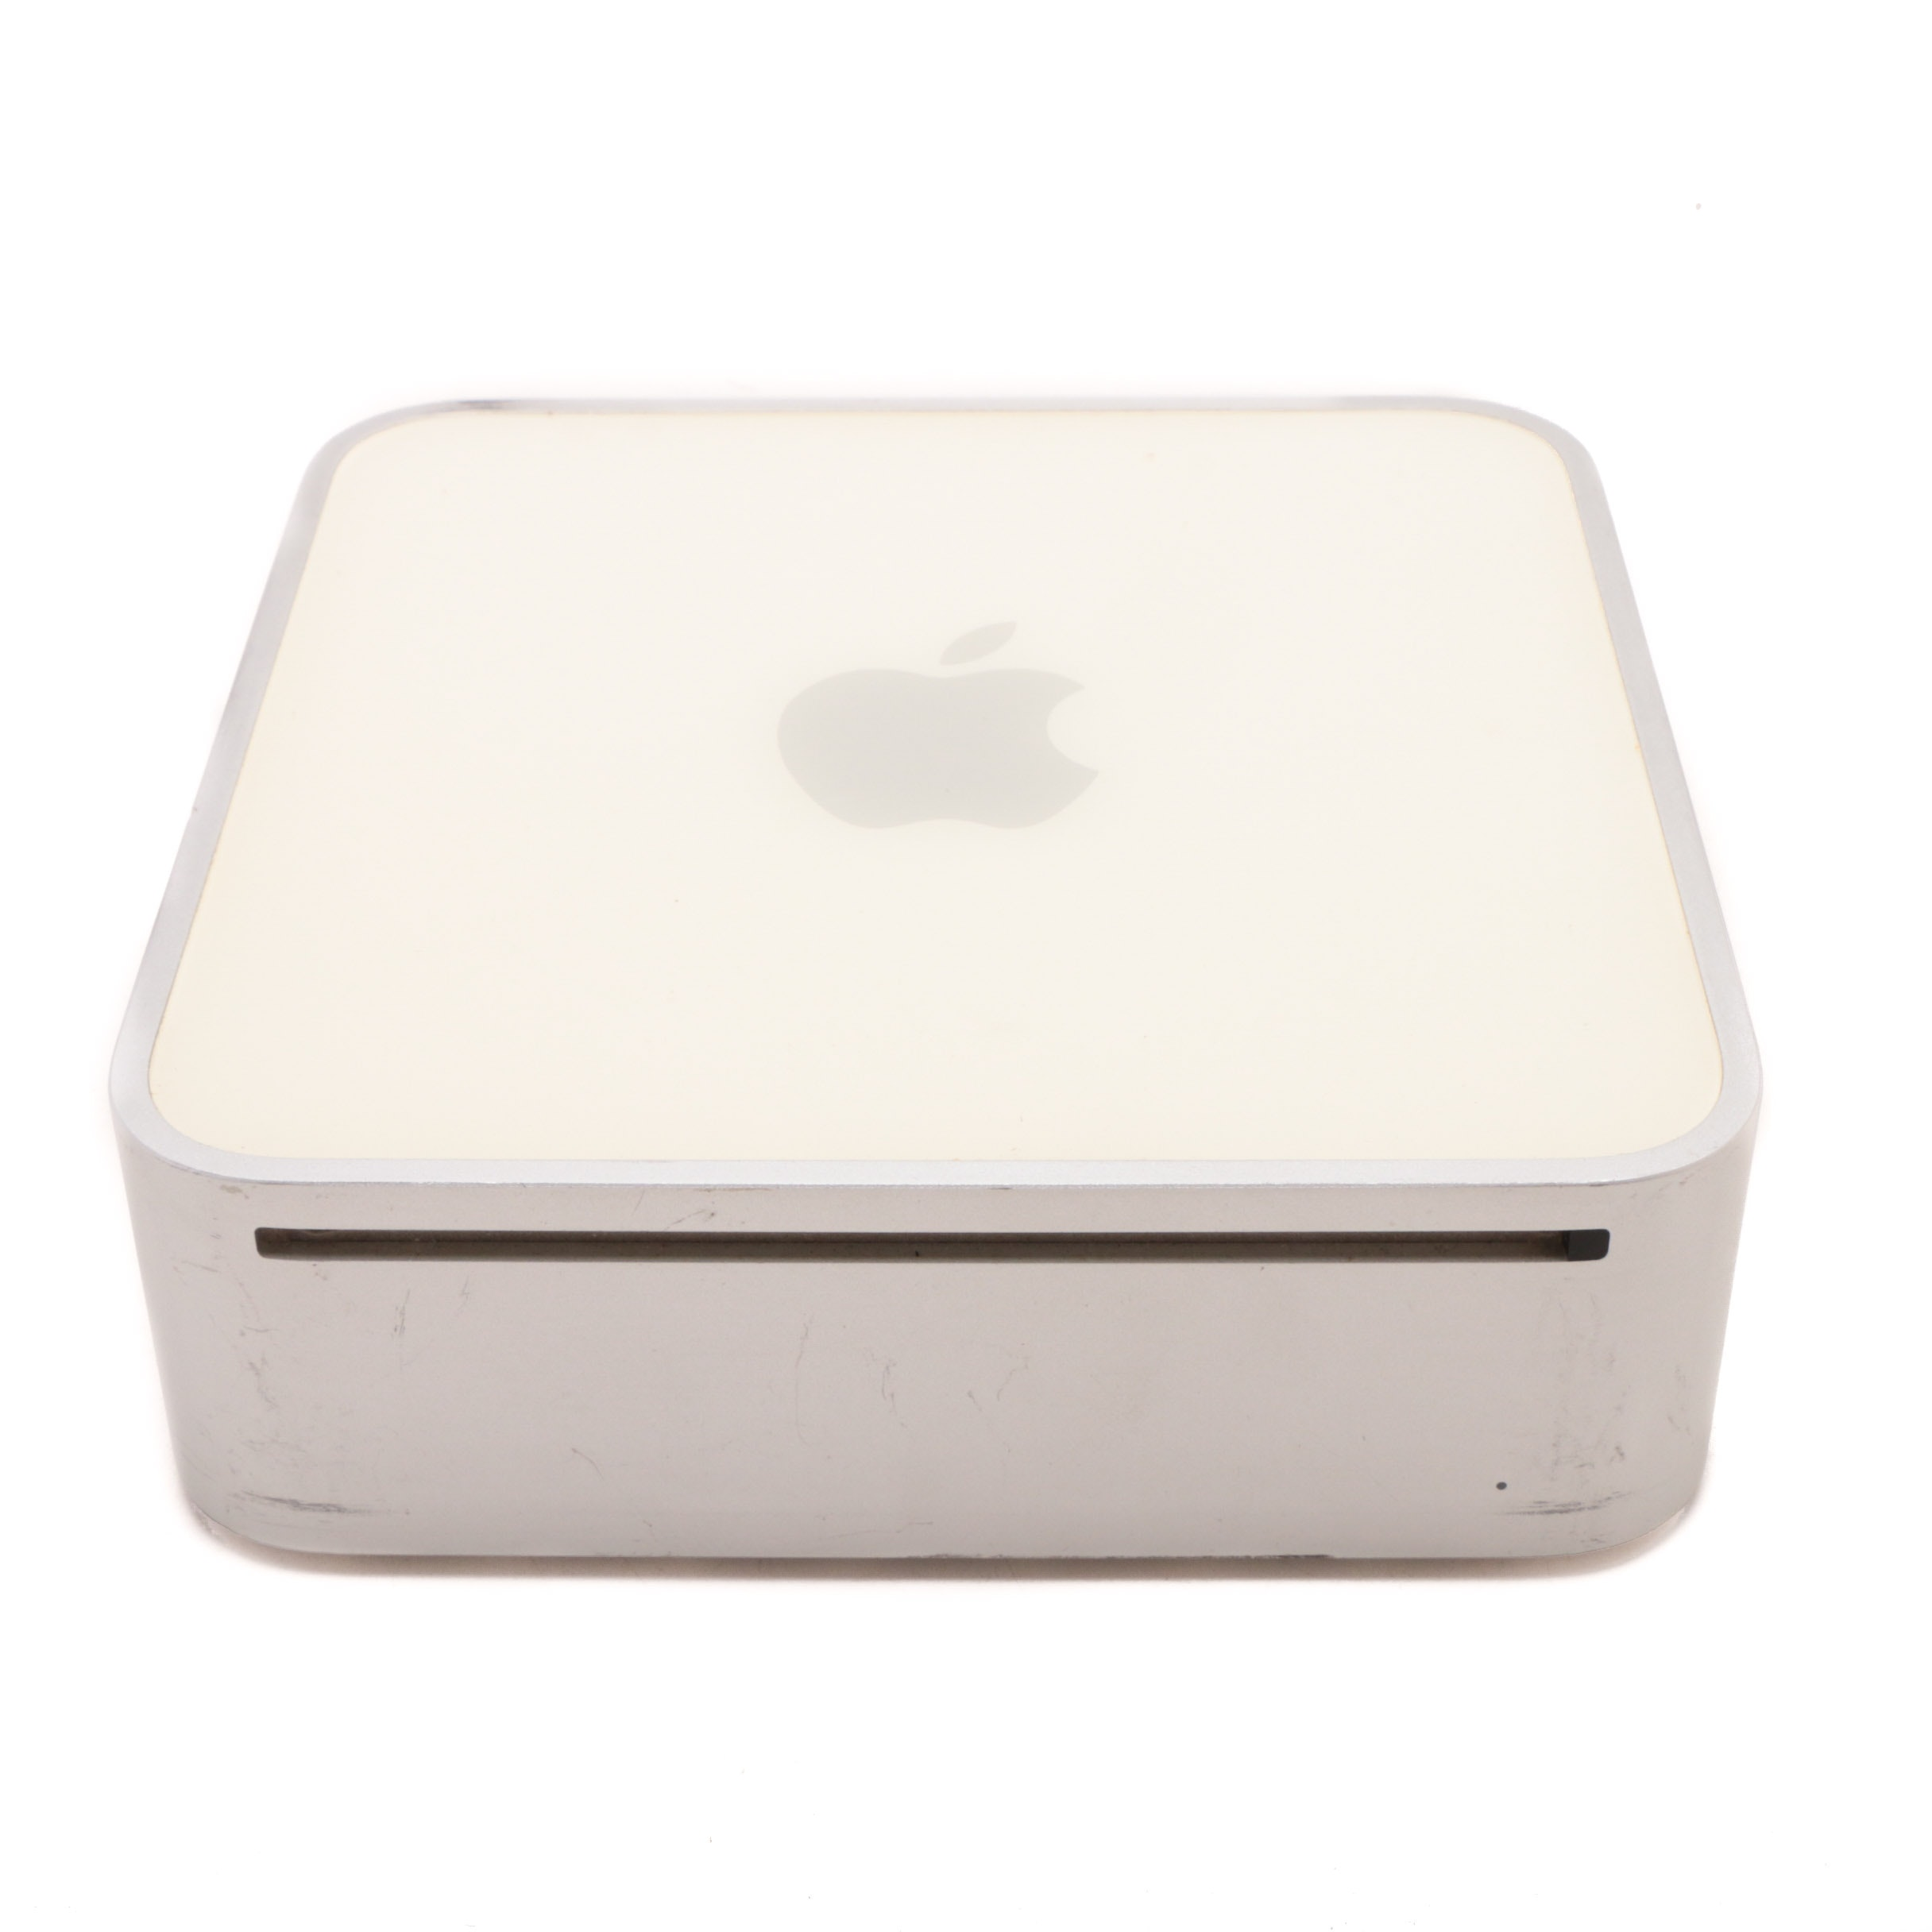 Mac Mini Desktop Computer